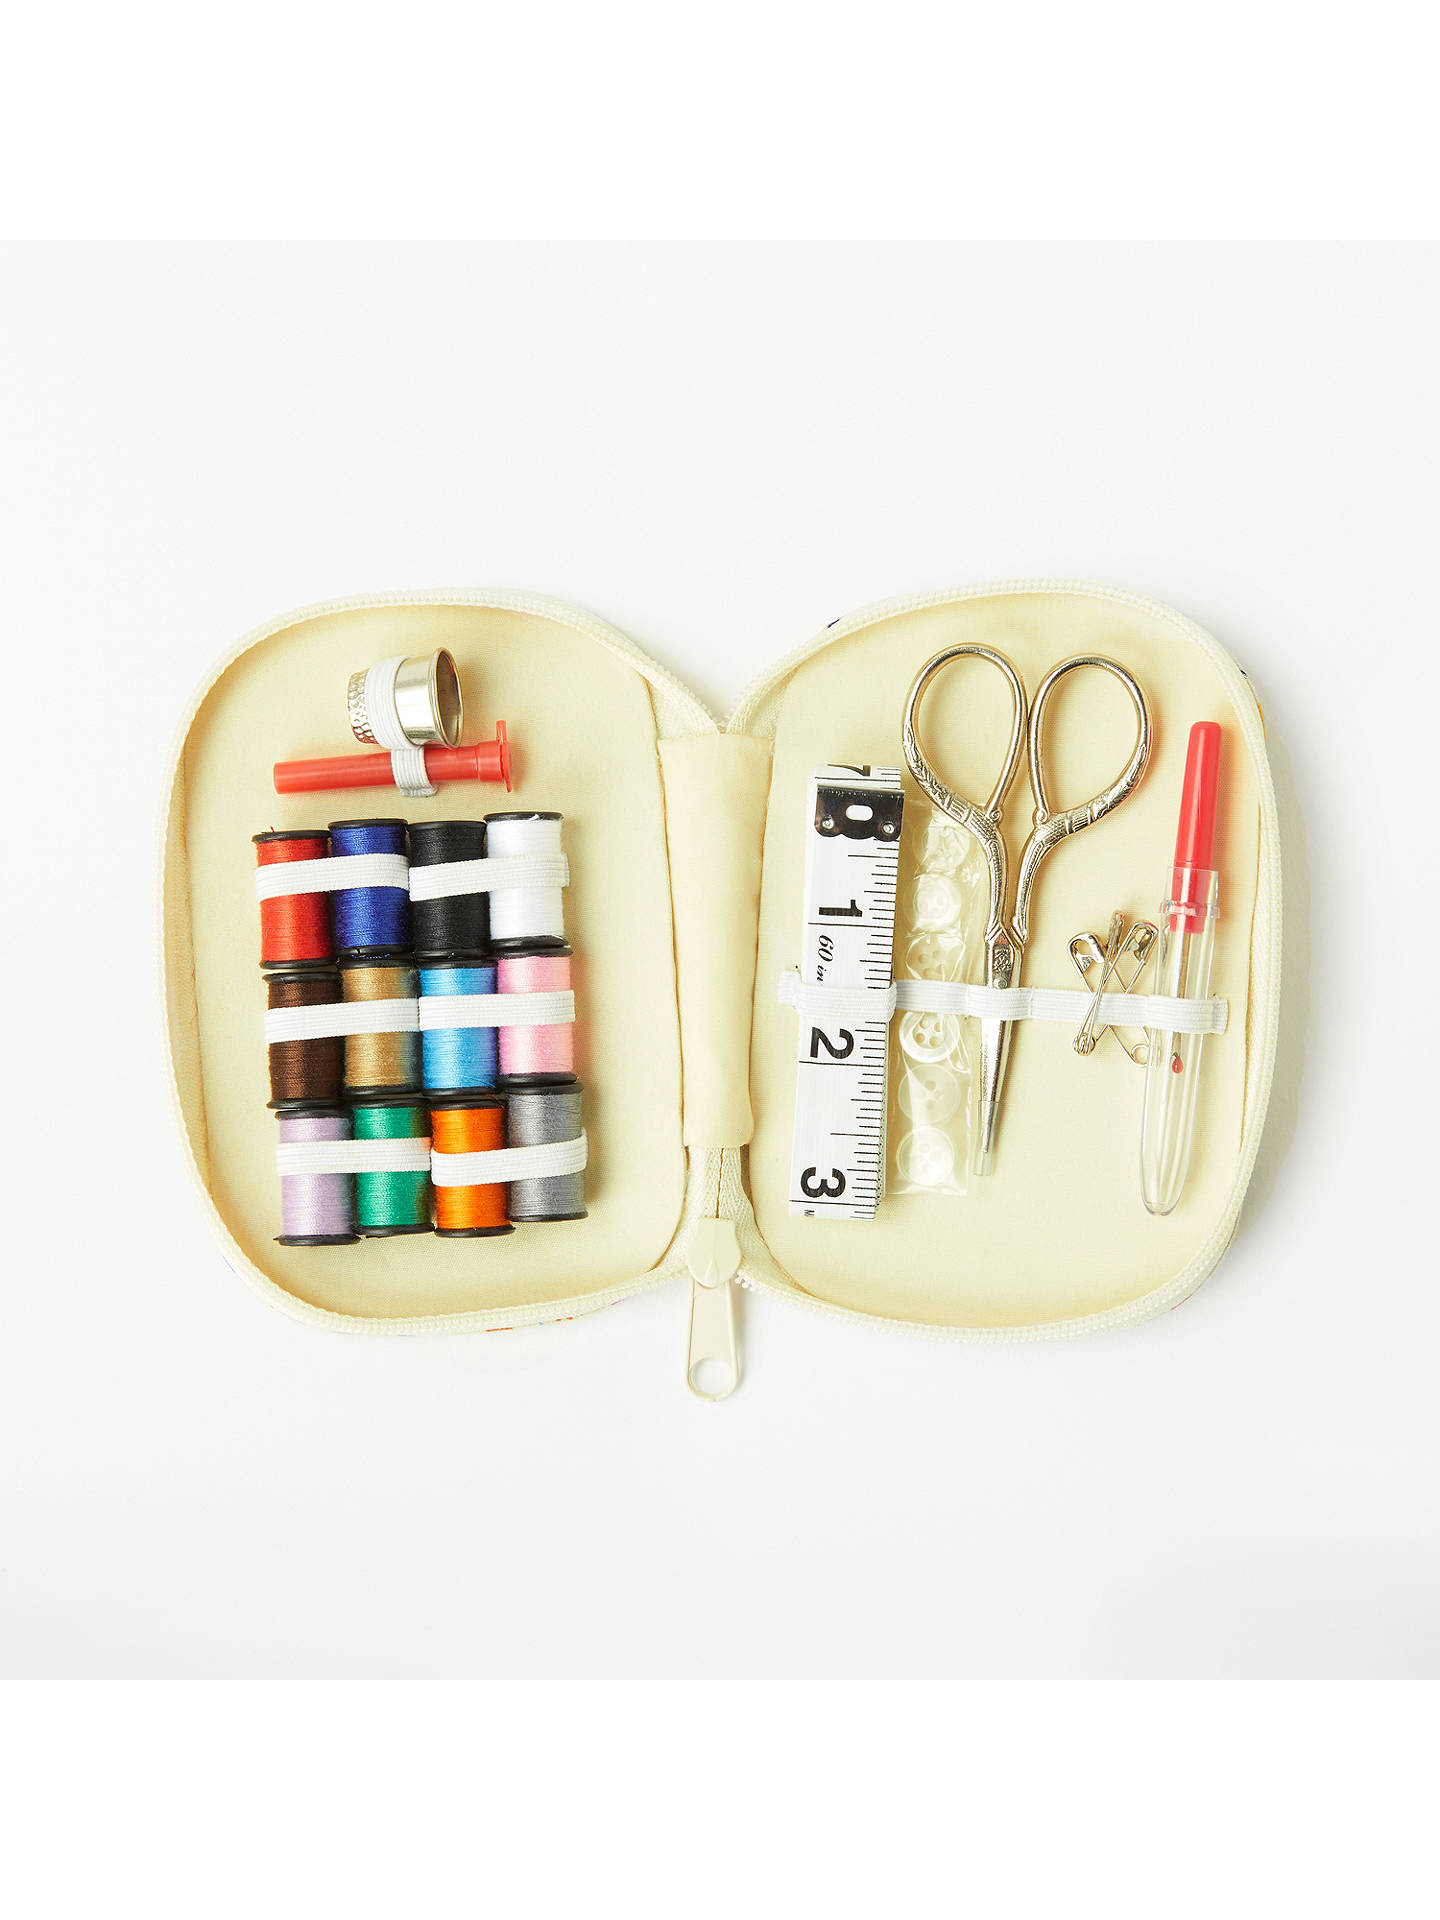 BuyJohn Lewis & Partners Distant Dreams Sewing Kit, Cream Online at johnlewis.com